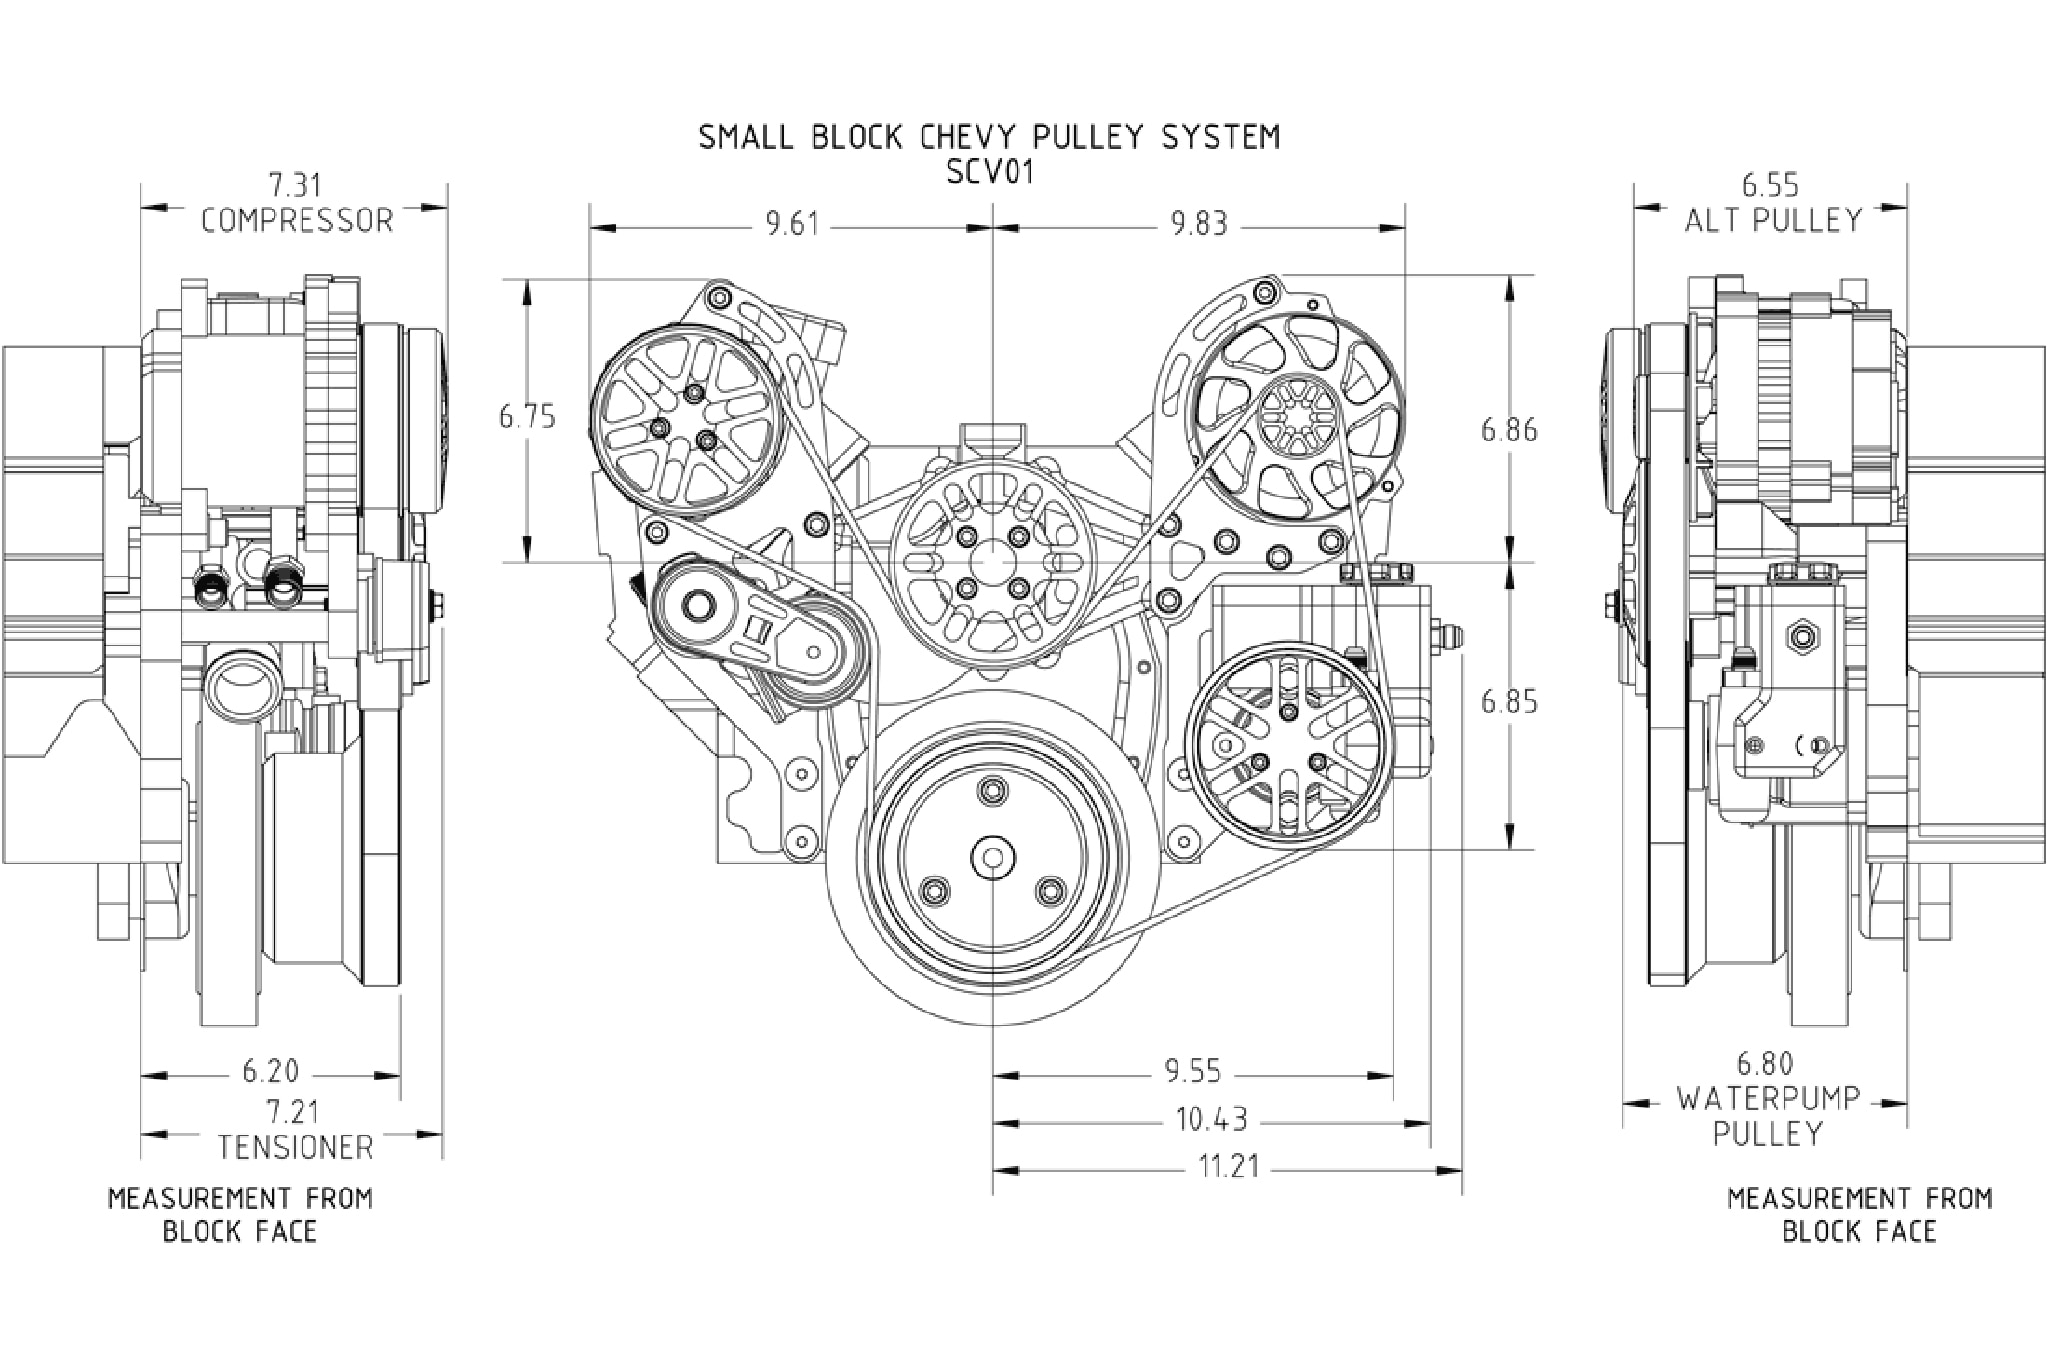 compressor pump diagram power to light then switch modernizing a small-block chevy with concept one pulley system - hot rod network